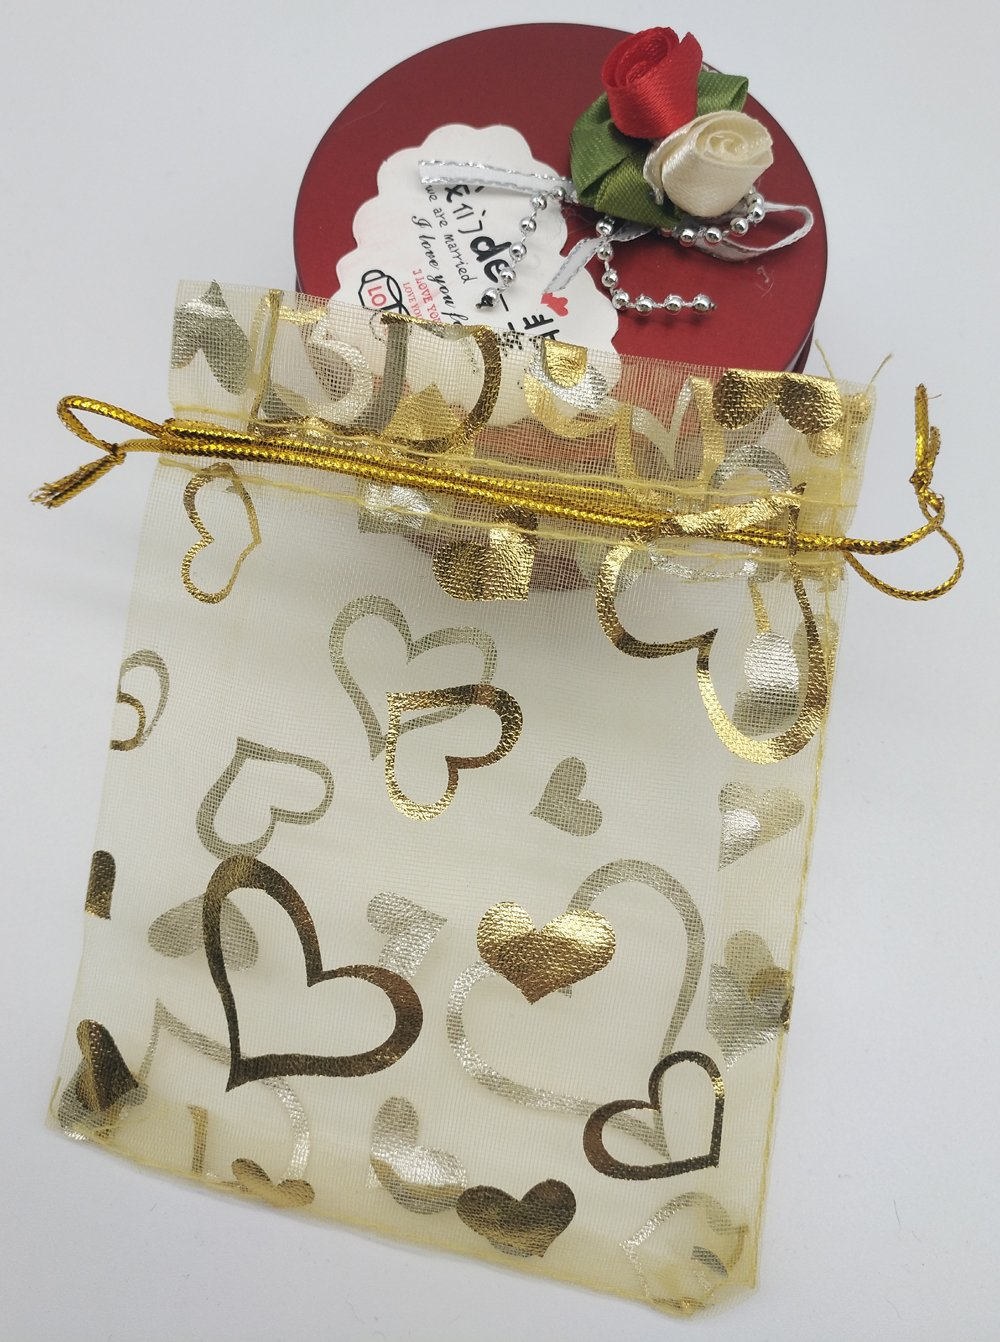 Ankirol 100pcs Mini Sheer Organza Wedding Favor Bags 3.5x4.5 Luxury Jewelry Candy Gift Card Bags with Gold Line Drawstring Pouches Gold Heart